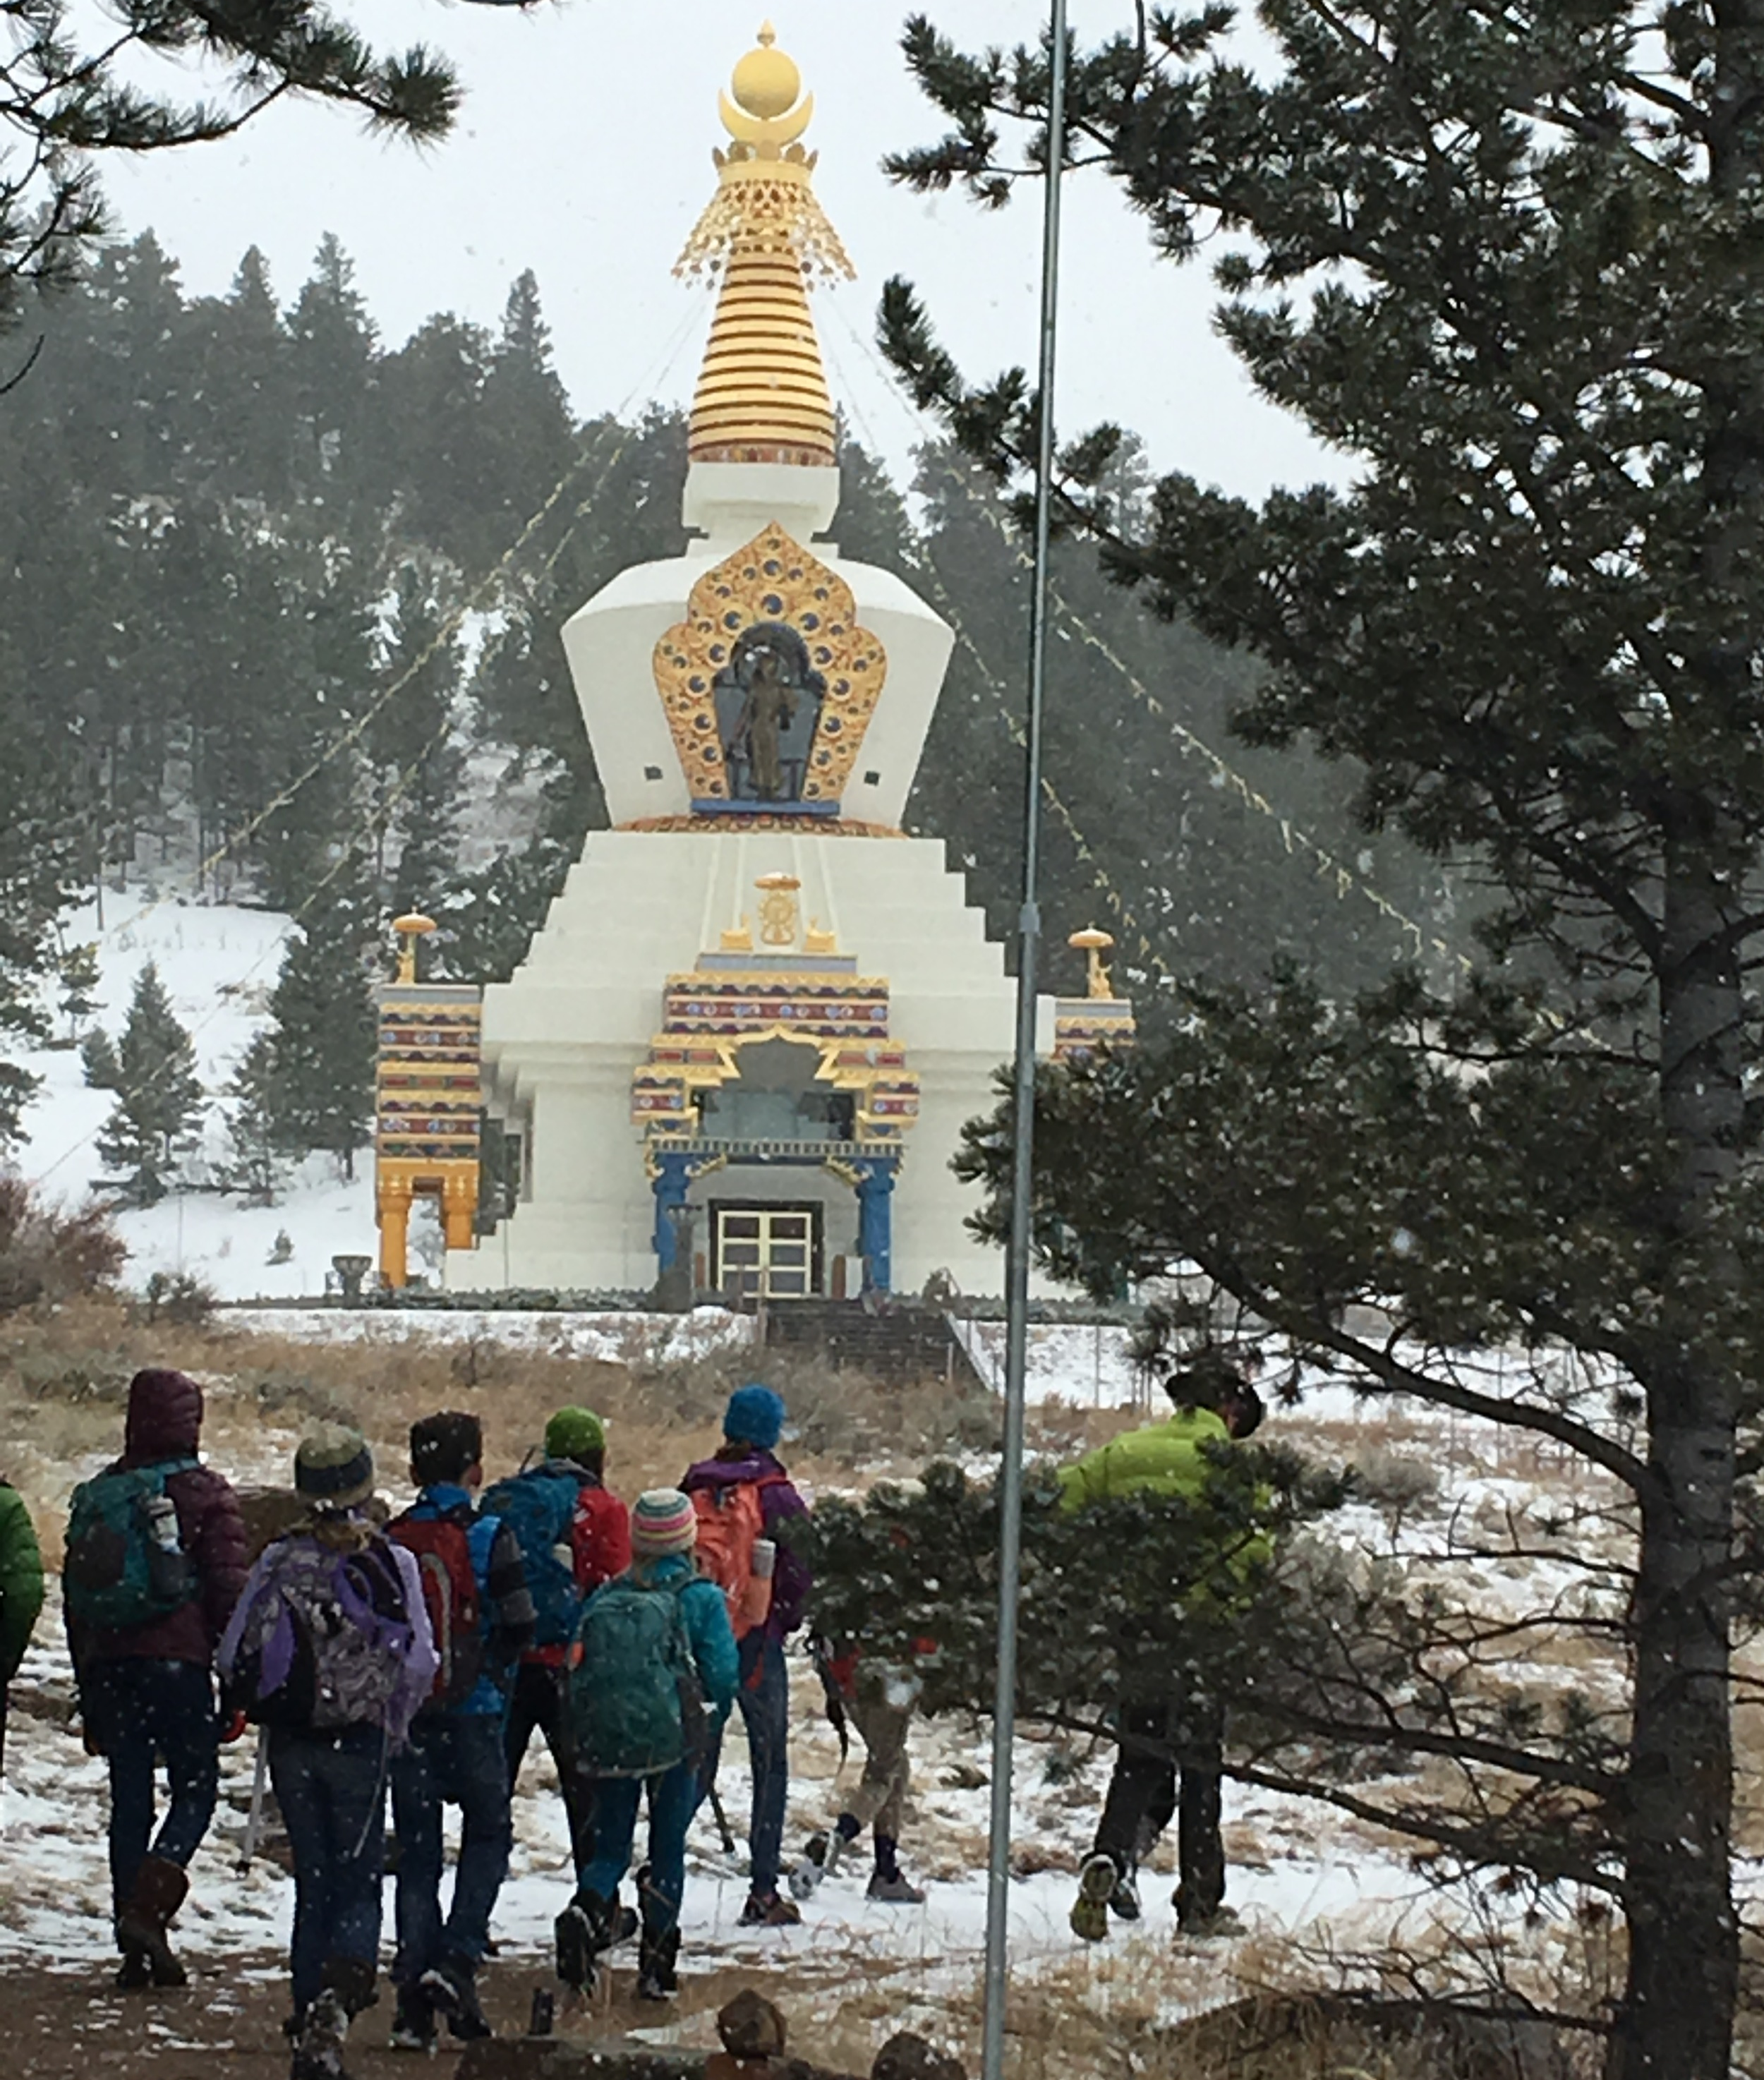 Visit to the Shambala Mountain Center during our History of Law studies.